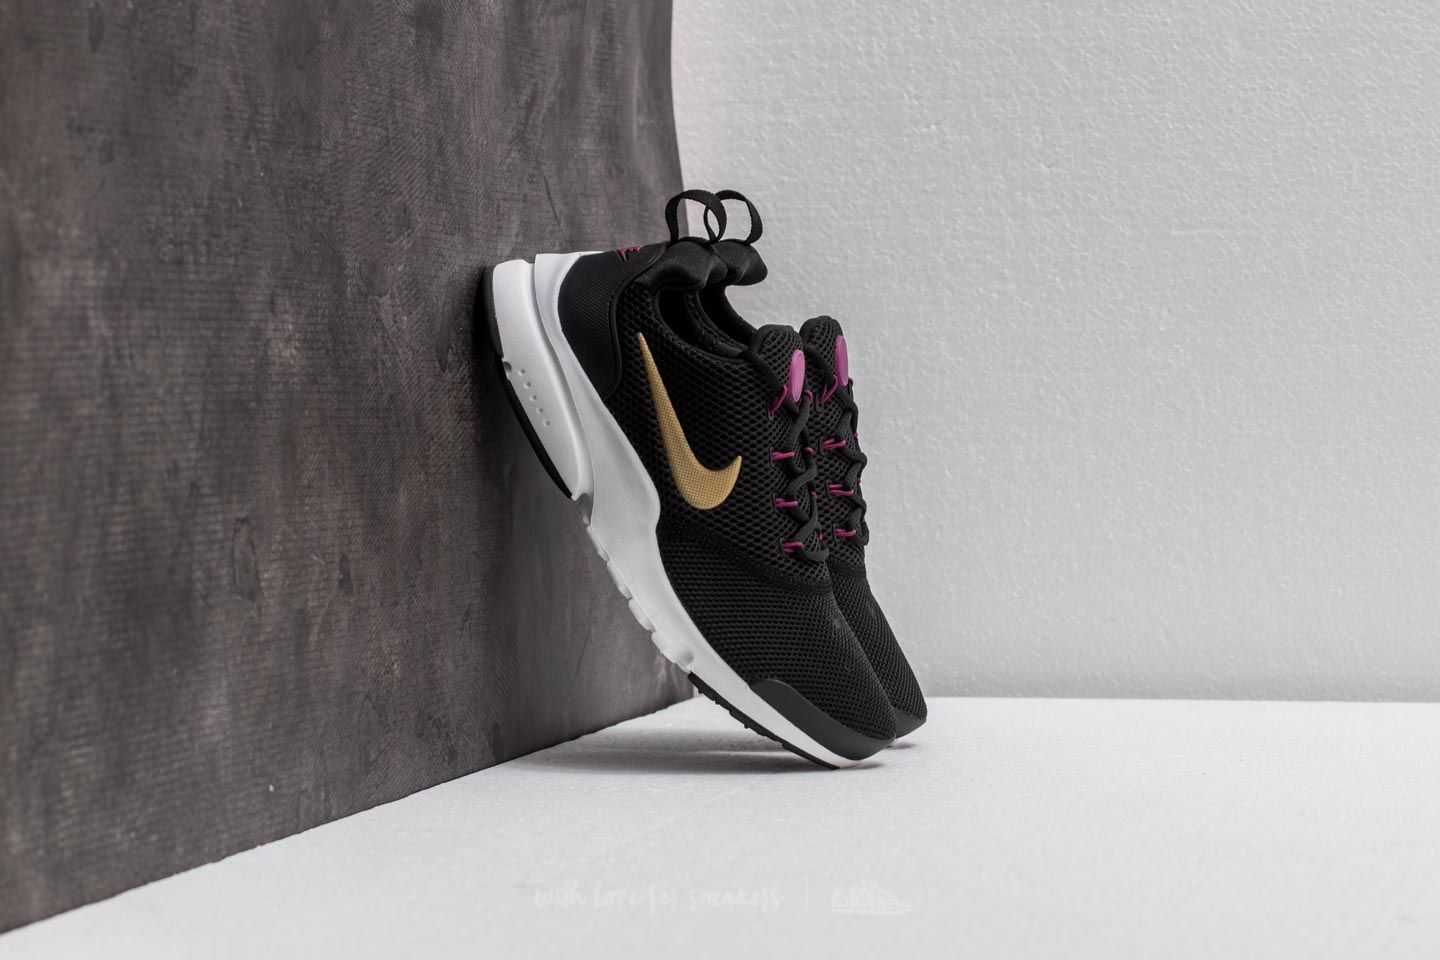 85918e267191 Nike Presto Fly (GS) Black  Metallic Gold-Tea Berry